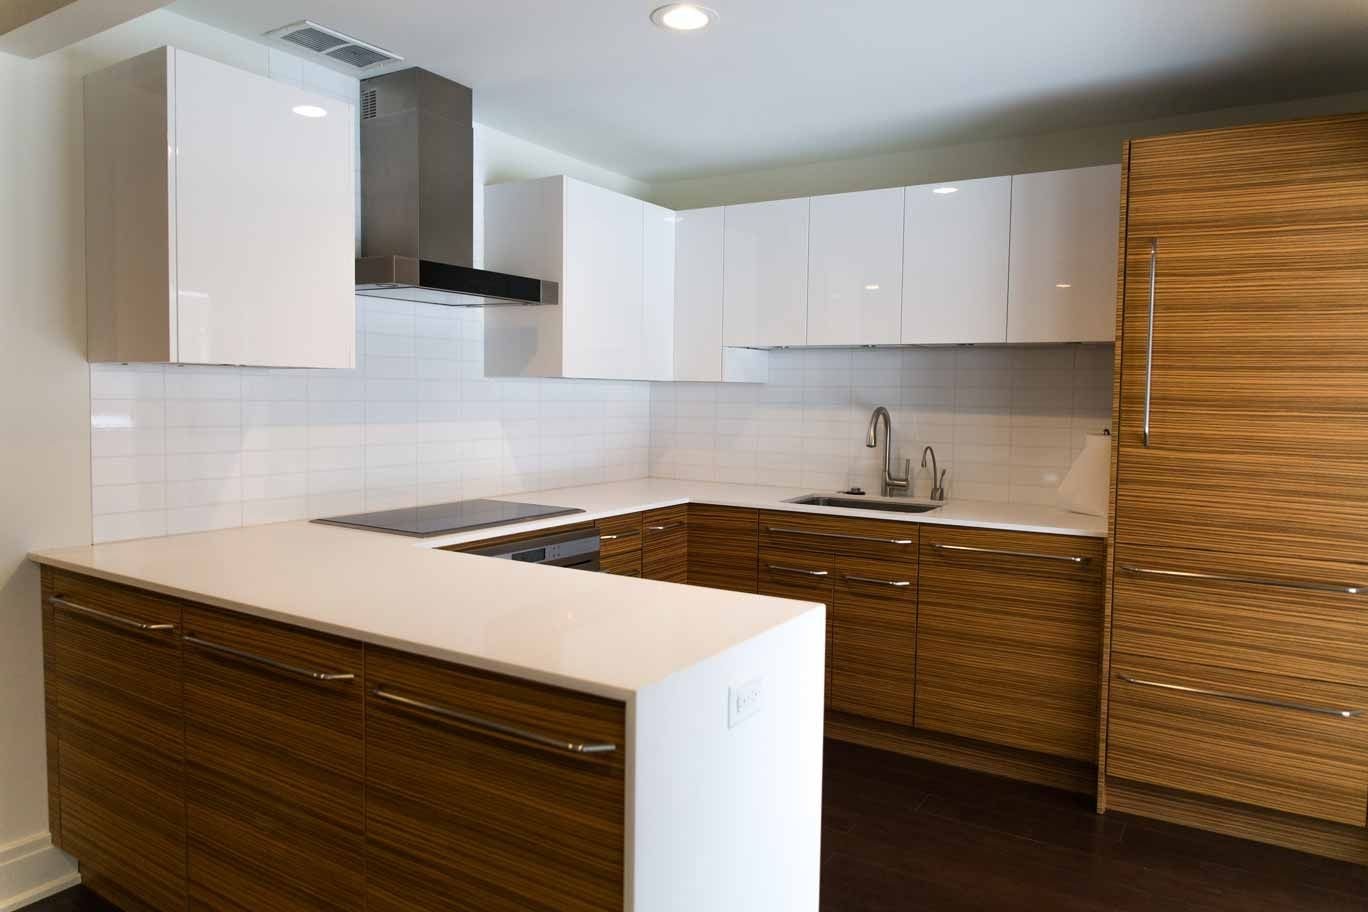 Photos Hgtv With Zebra Wood Kitchen Cabinets Ideas For Home Design